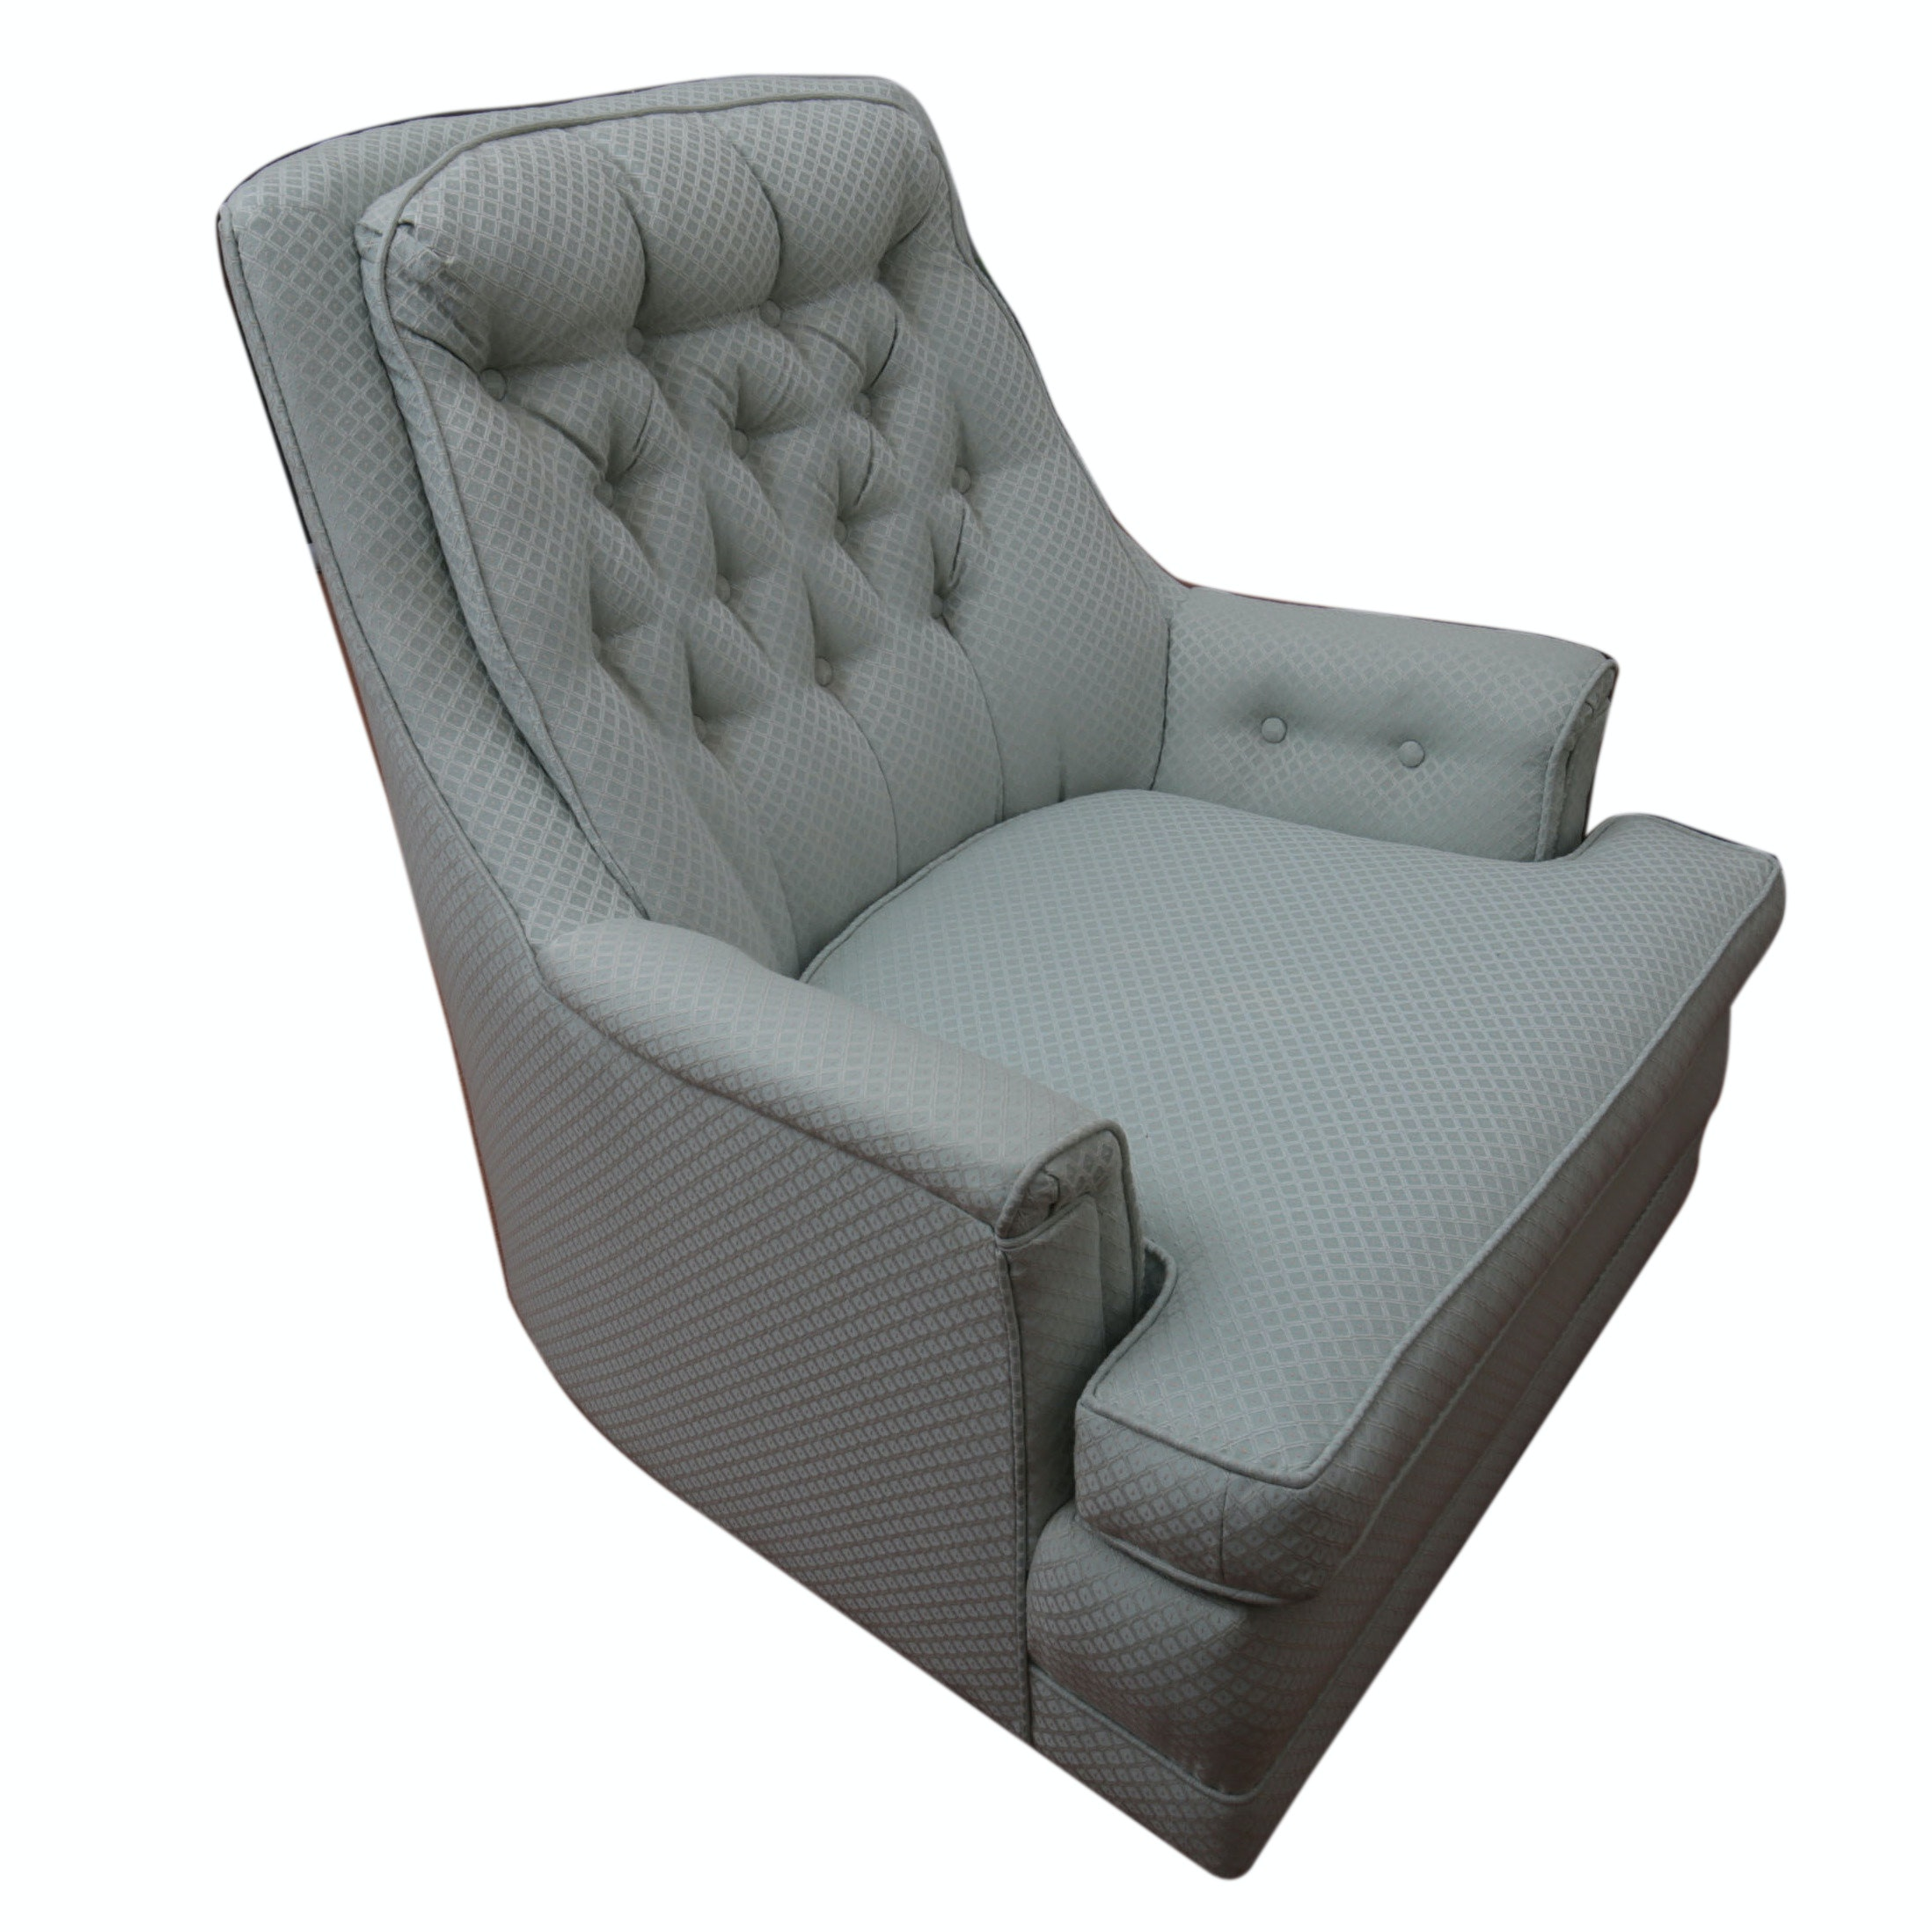 Vintage Upholstered Armchair by Richman Distinctive Interiors